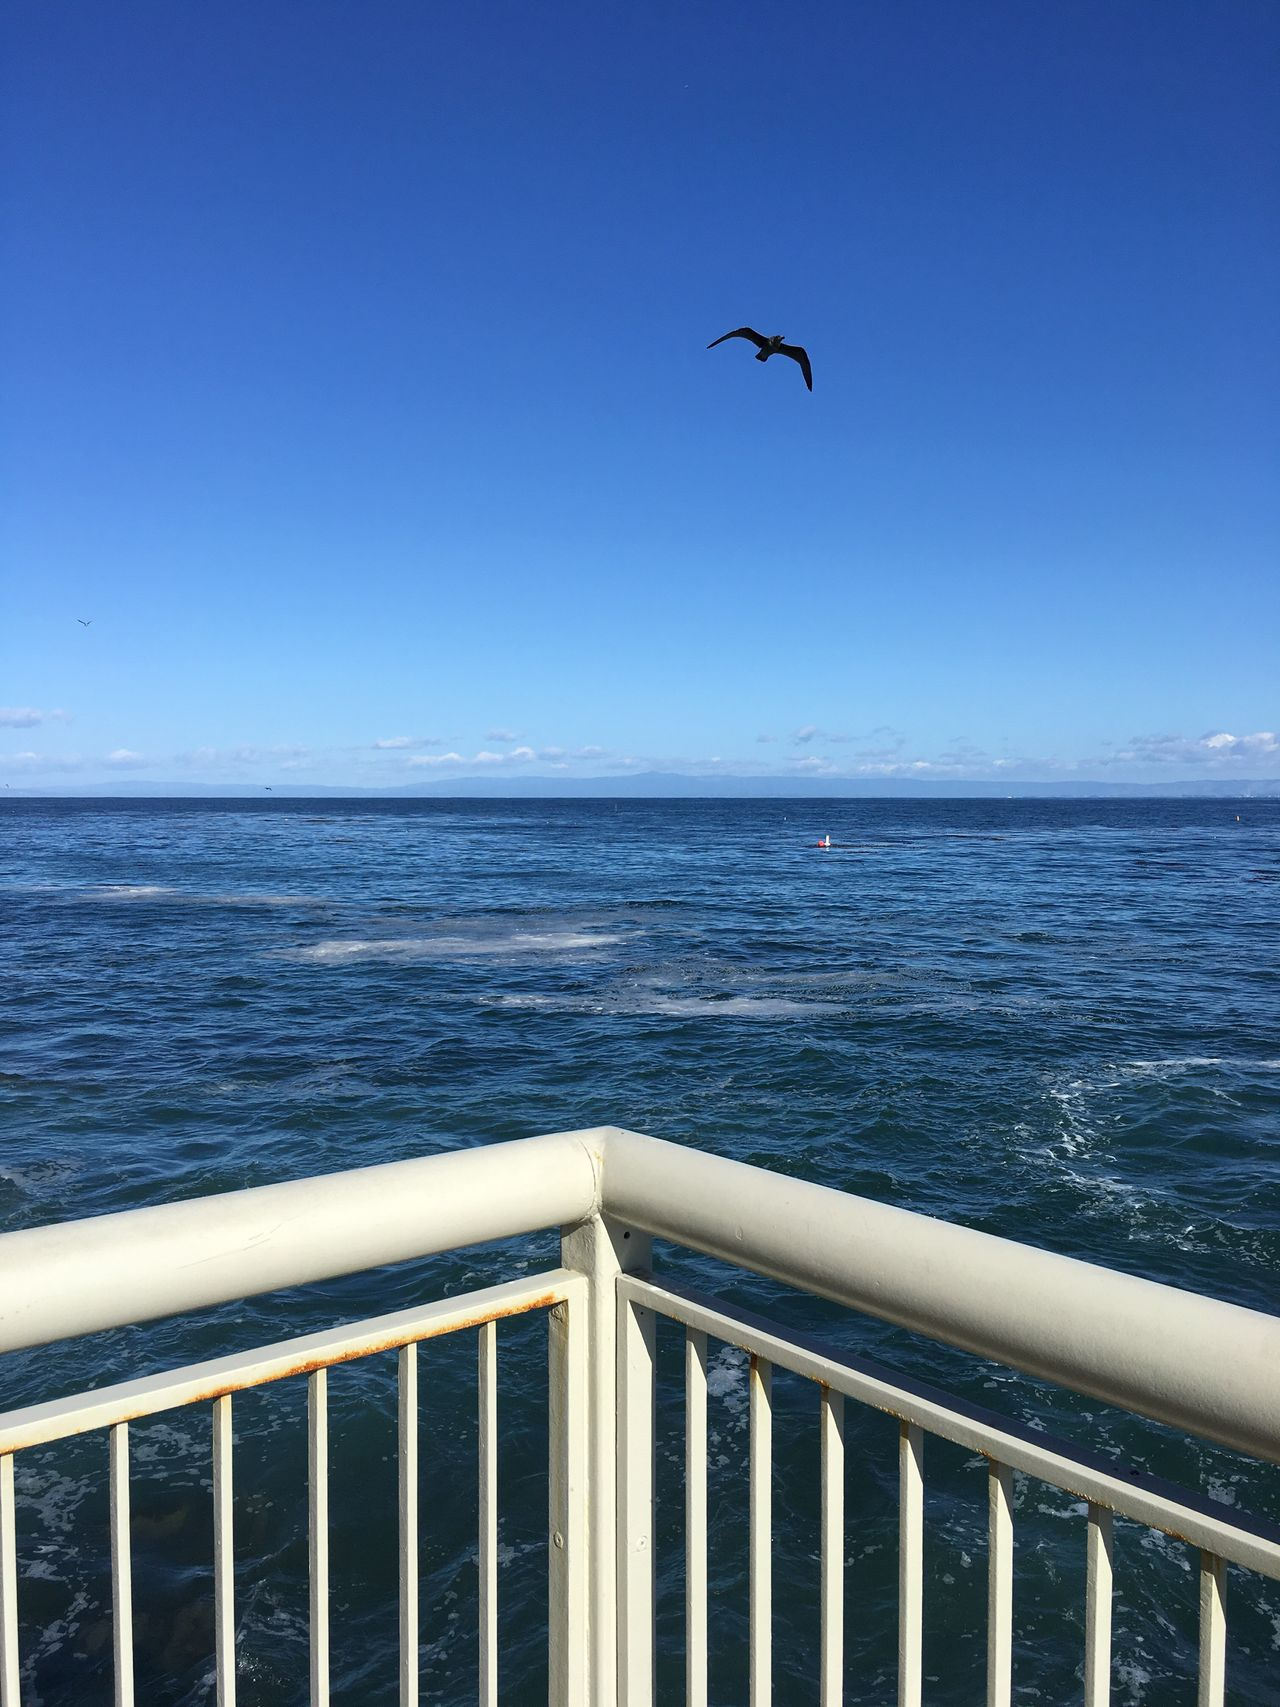 sea soar serene Monterey Bay Aquarium Ocean Blueskies Freedom Seagull